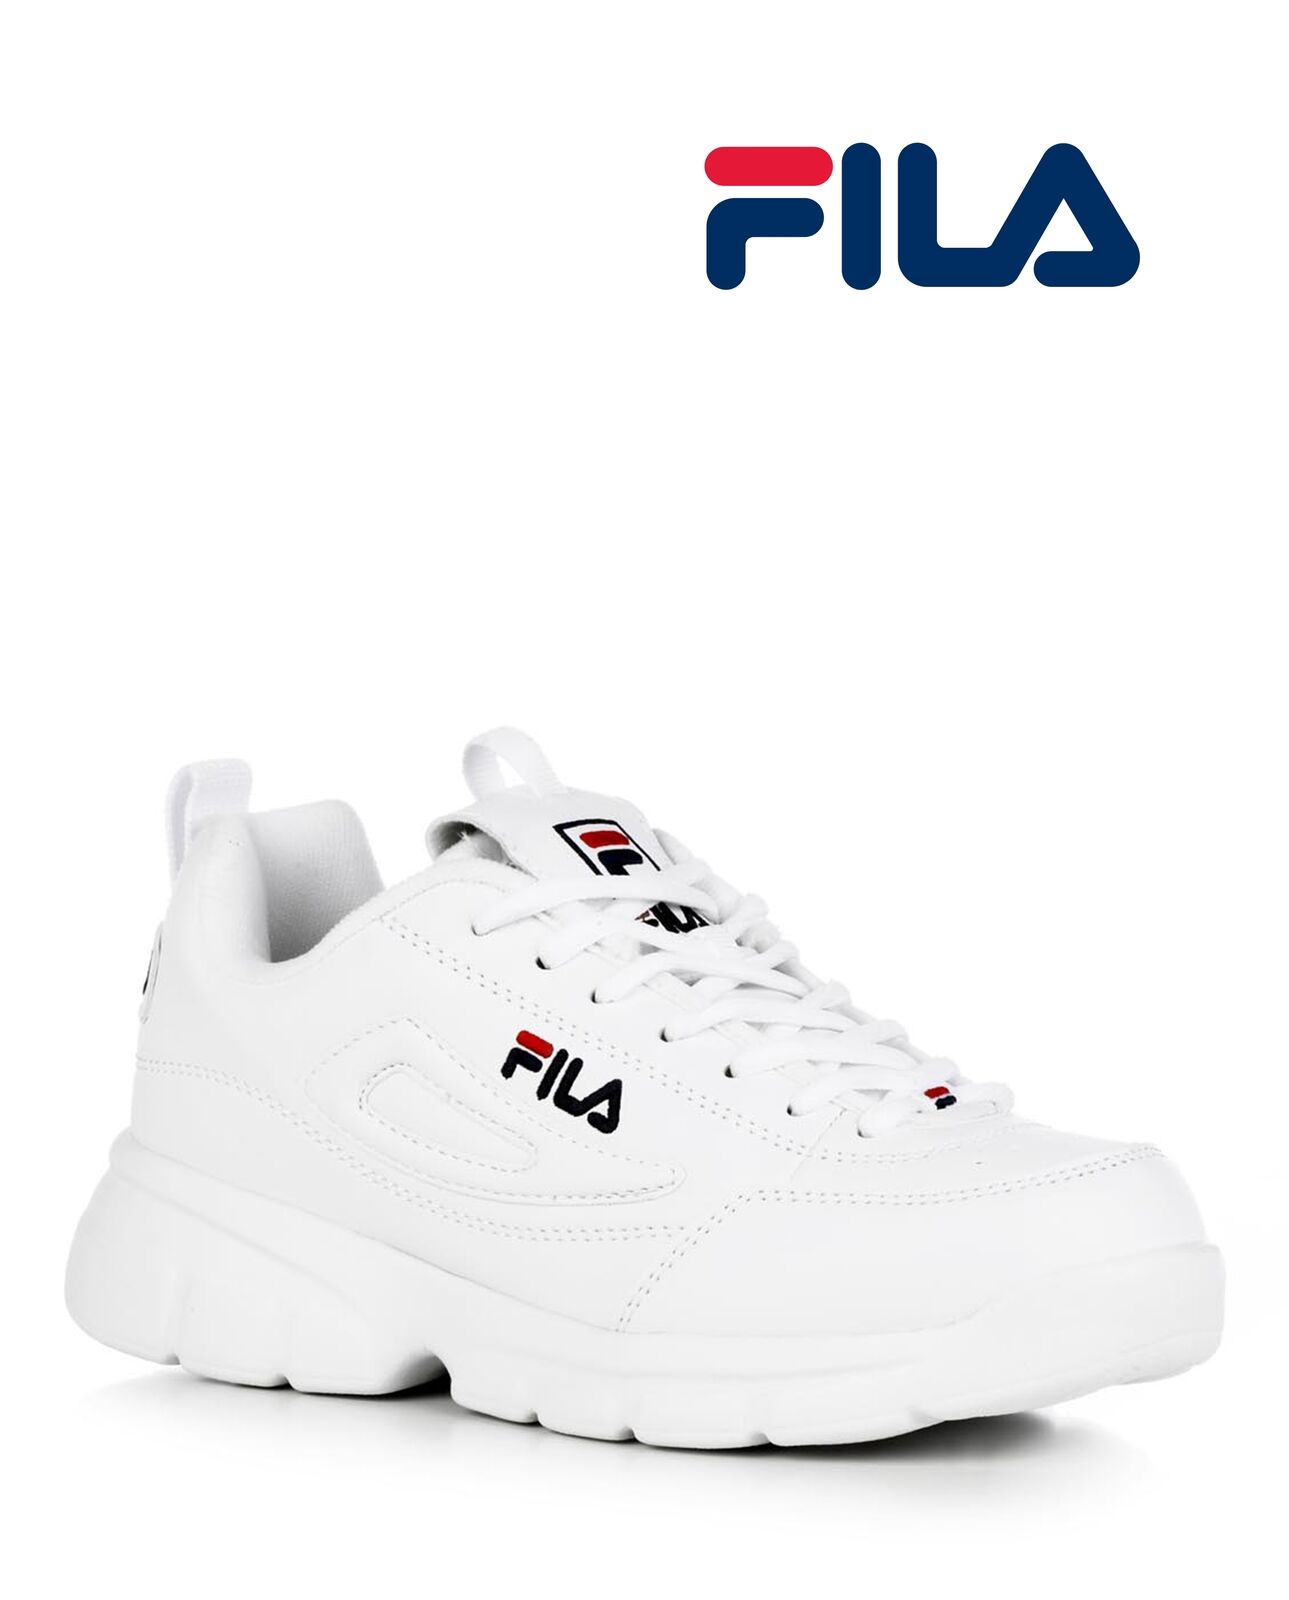 NEW FILA MEN'S DISRUPTOR SE TRAINING SHOE RUNNING ATHLETIC SNEAKERS 1SX60022